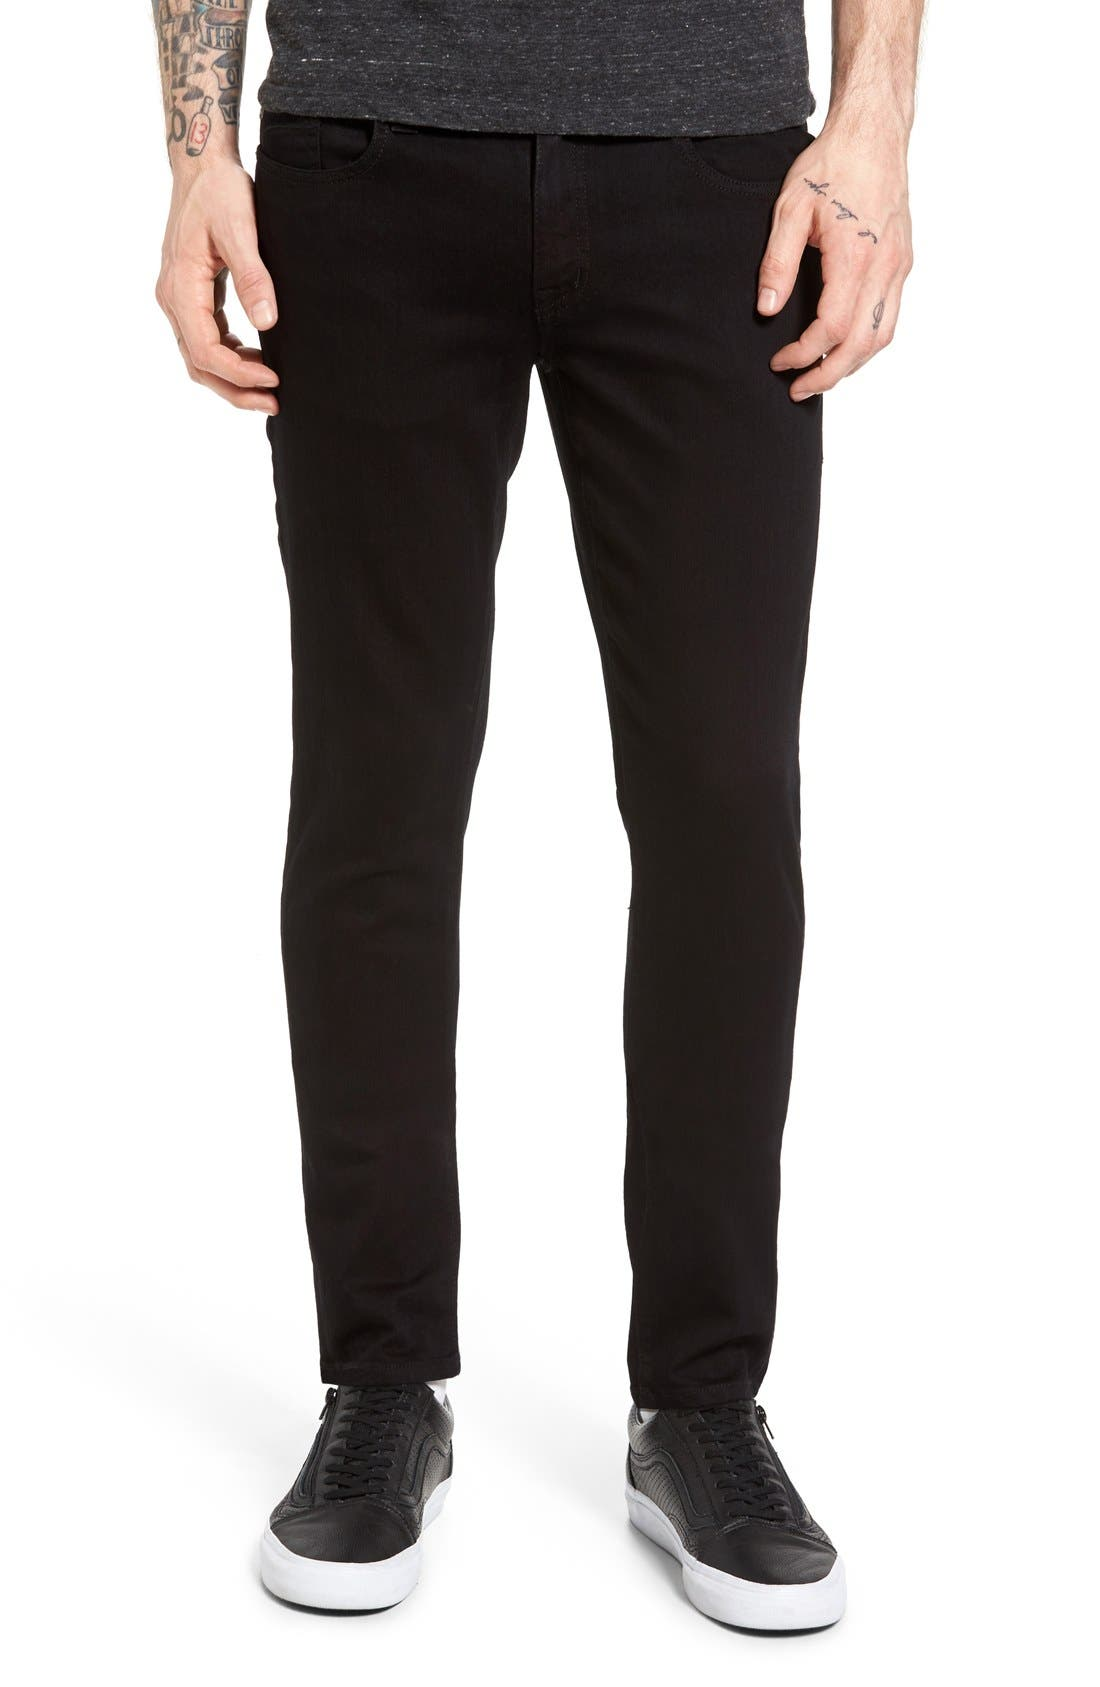 Main Image - Fidelity Denim Vantage Skinny Fit Jeans (Ever Black)